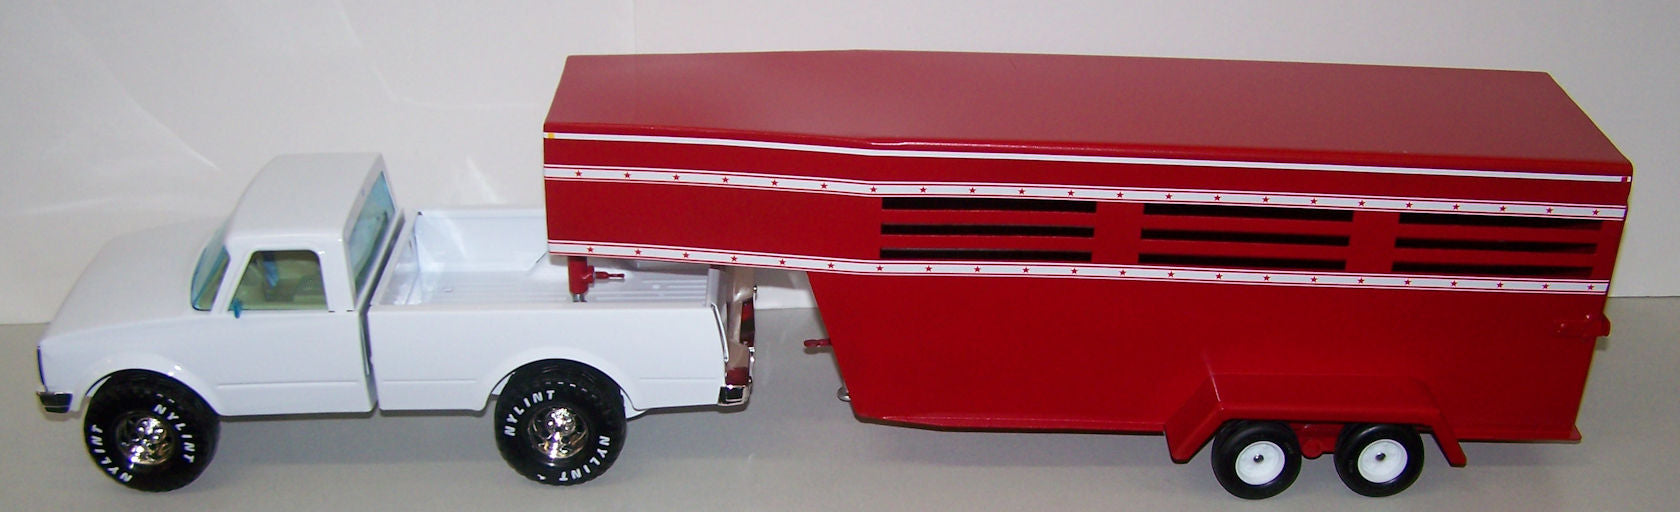 1/16 Custom Built Livestock Trailer